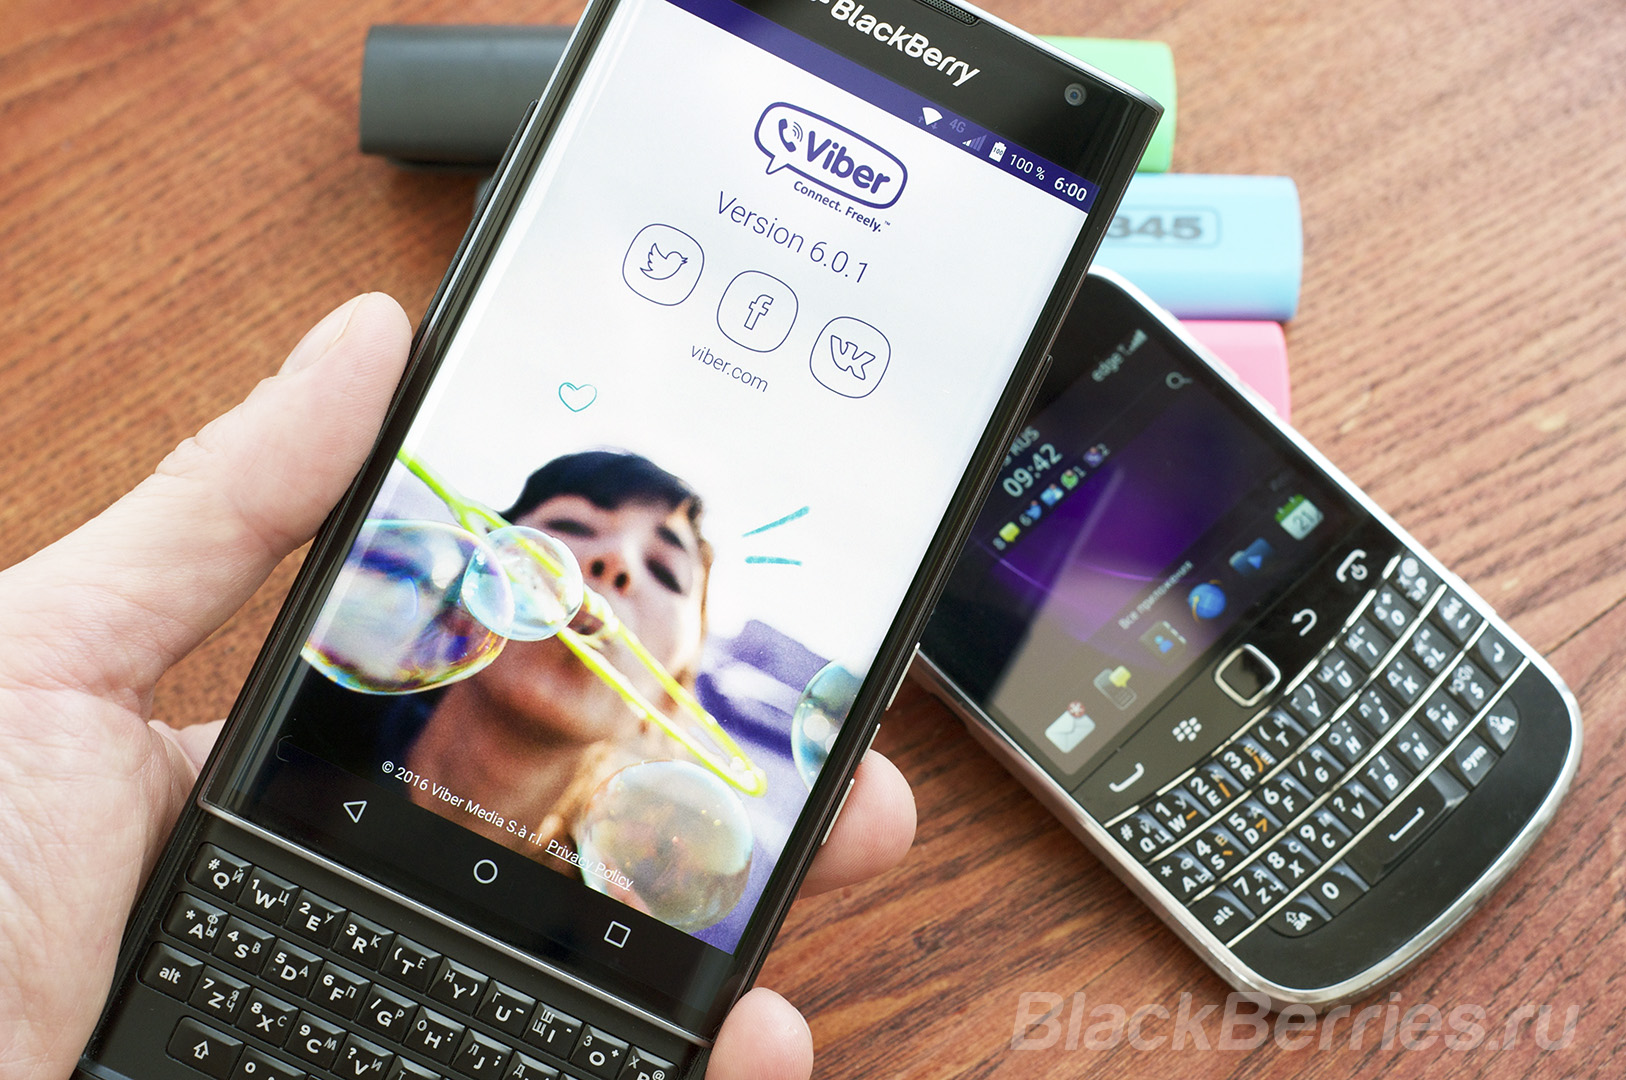 BlackBerry-Priv-Viber